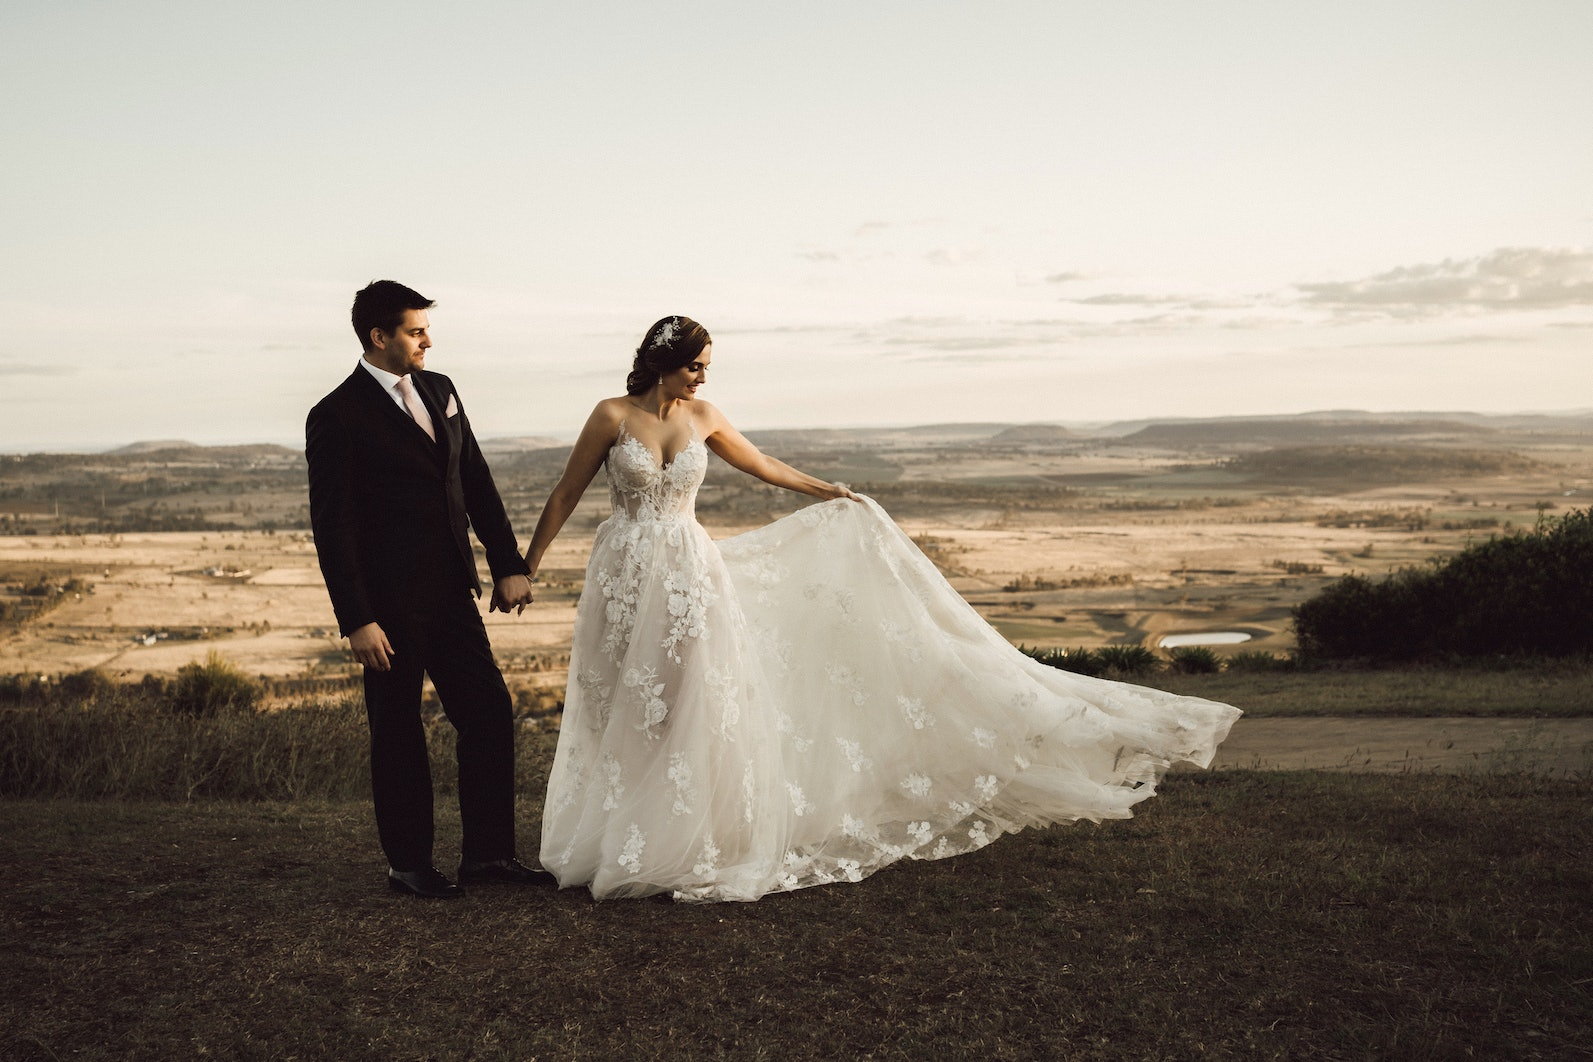 Bride and groom standing on escarpment, bride holding the train of her dress to one side